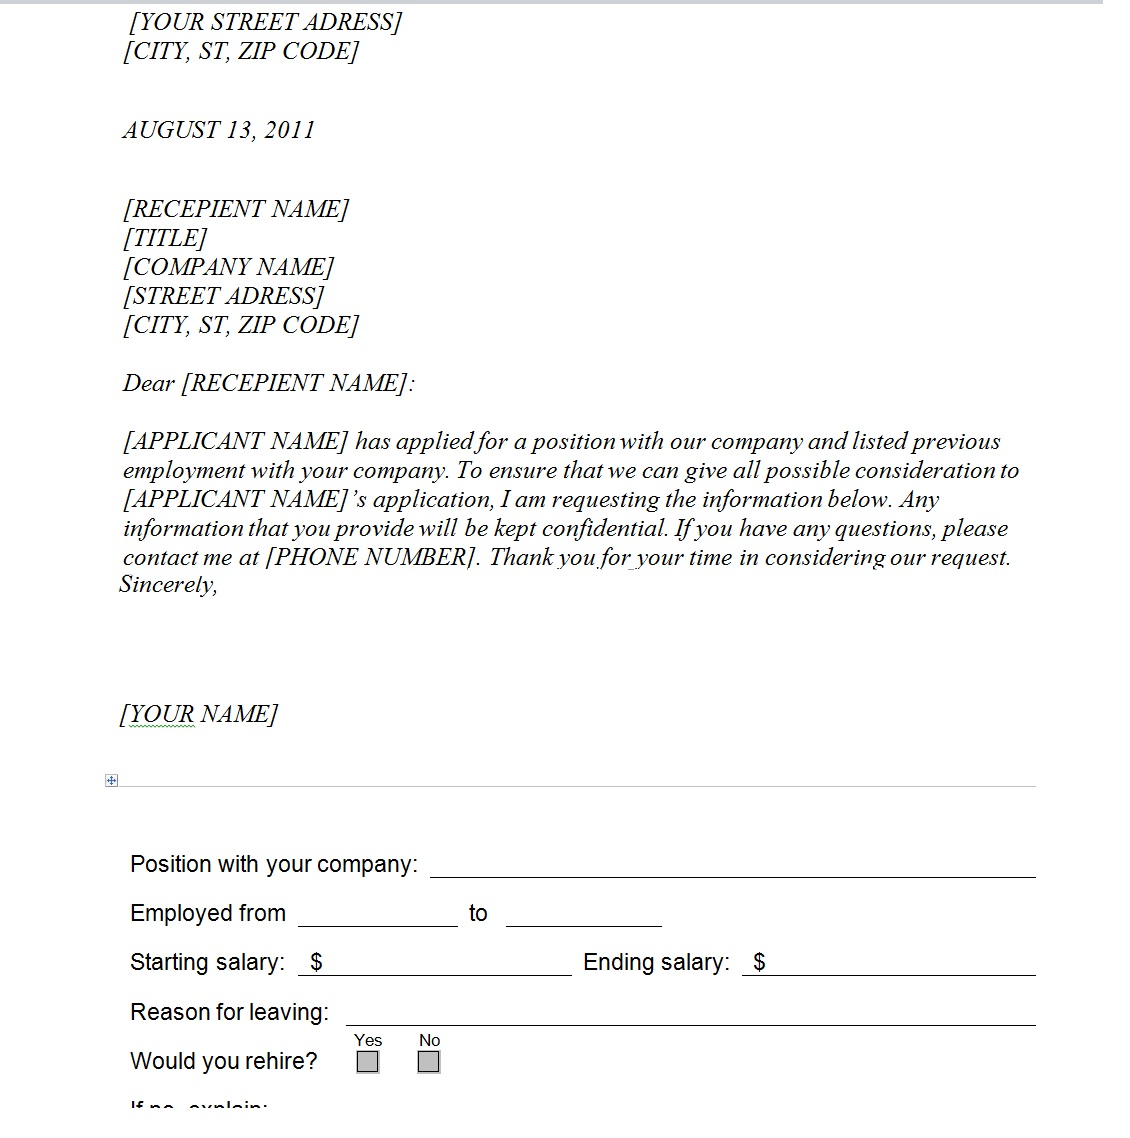 Employment verification template previous employment verification request template sample altavistaventures